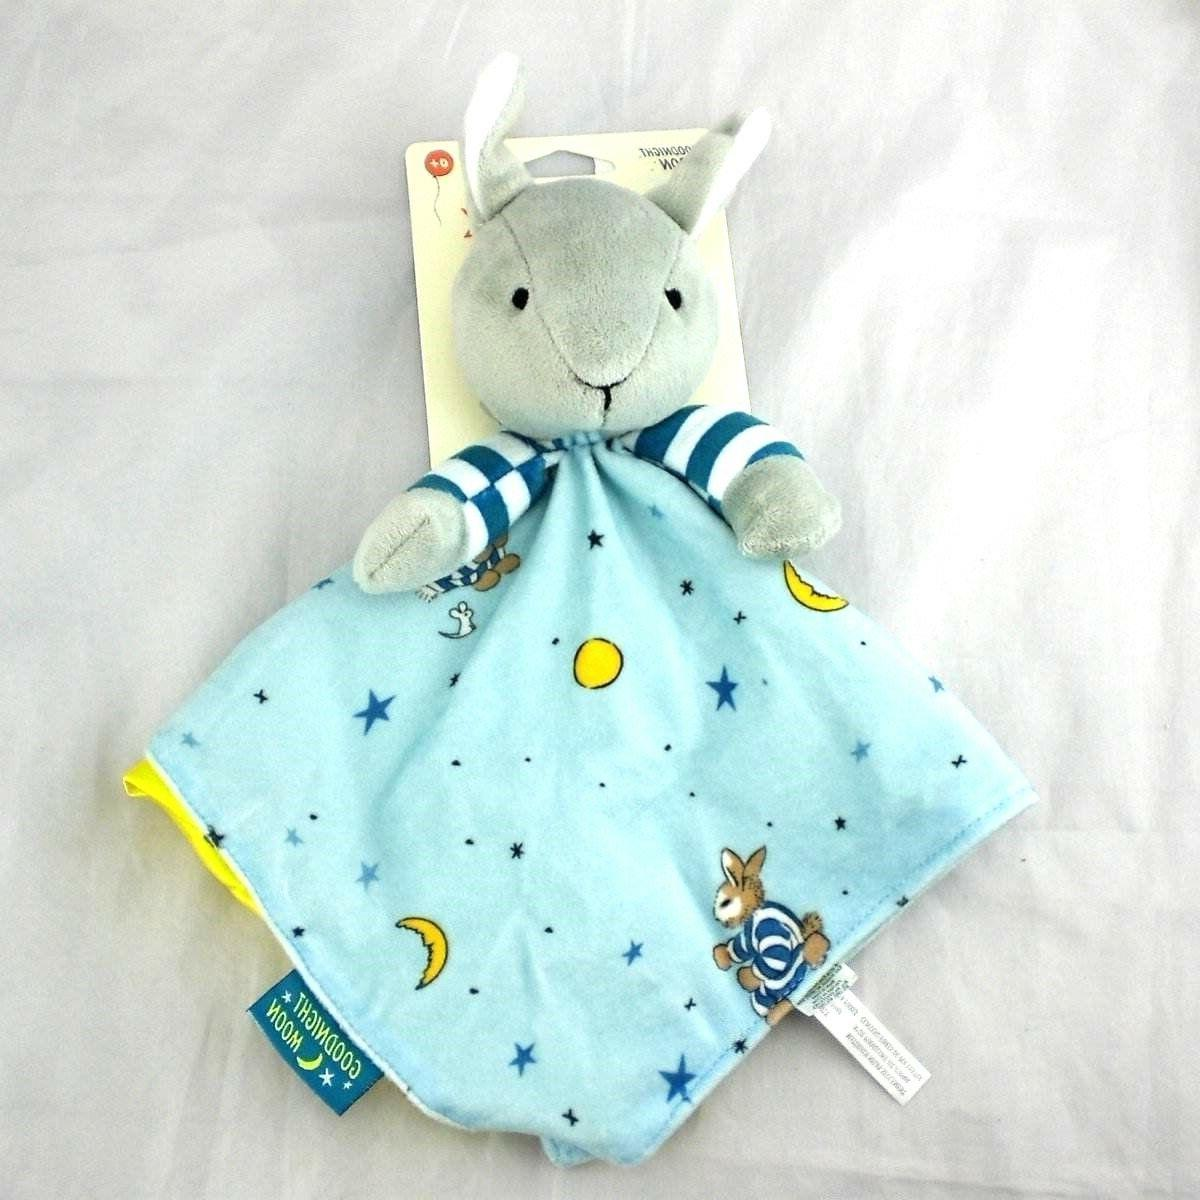 Goodnight Moon Grey Plush Bunny Baby Security Blanket NEW 15